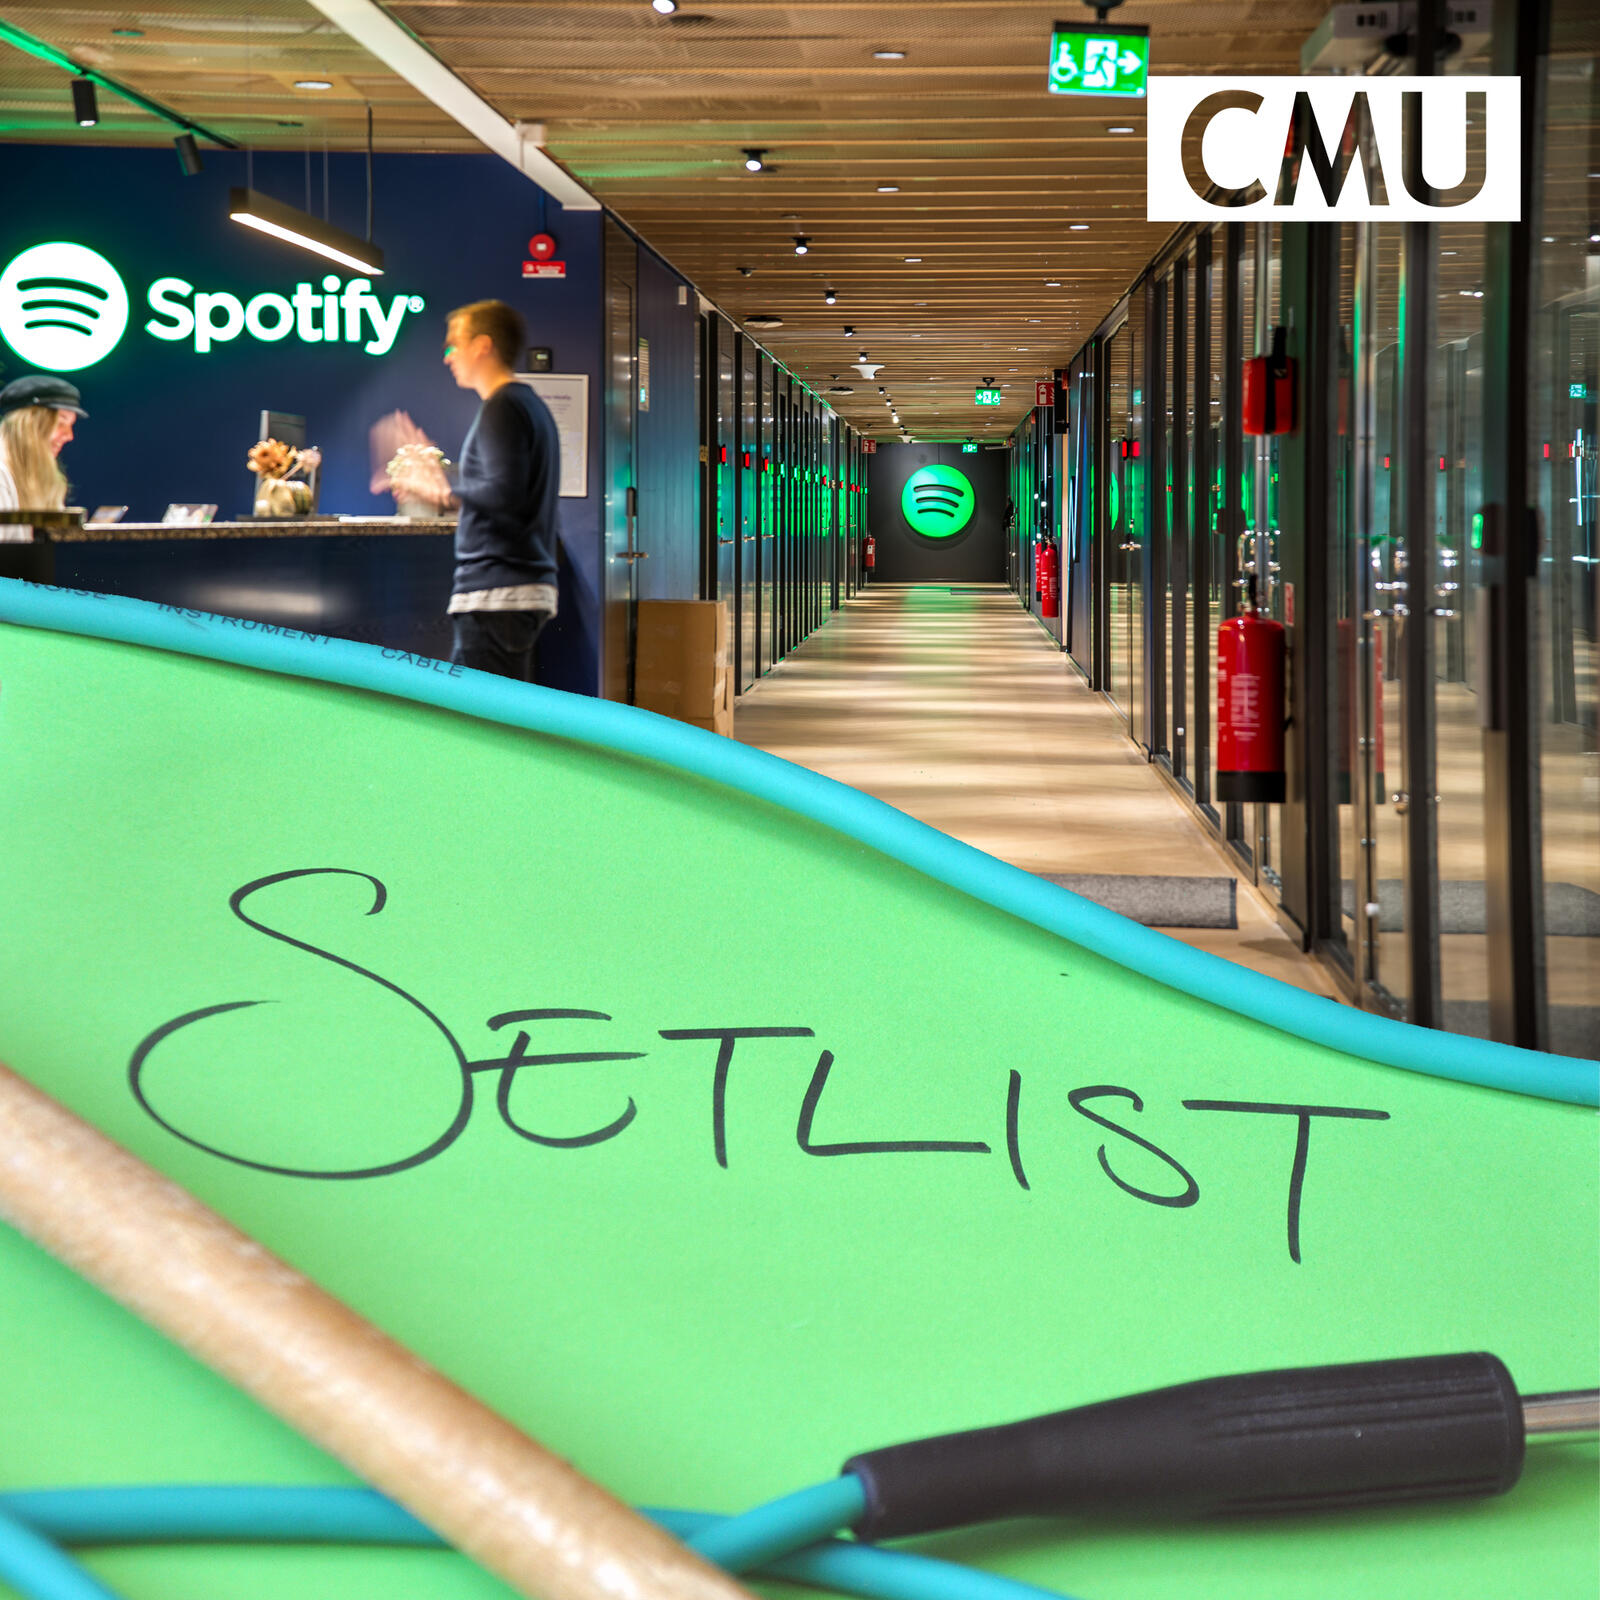 20 years of CMU – Spotify and streaming revolution